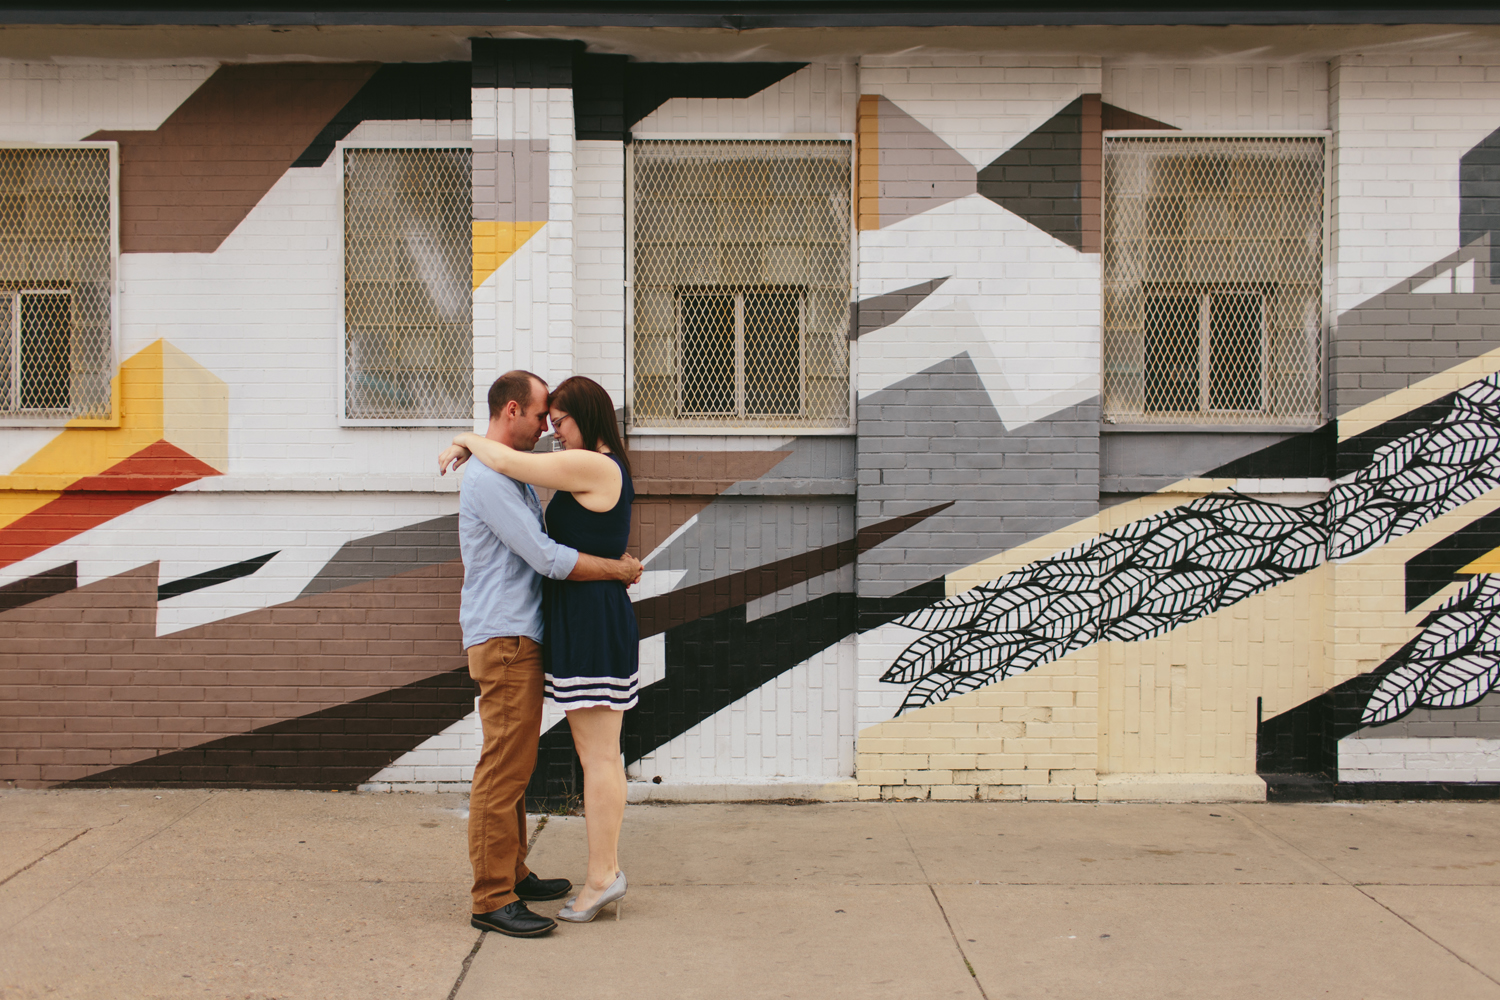 Jillian VanZytveld Photography Denver Colorado Engagement Portraits 10.jpg